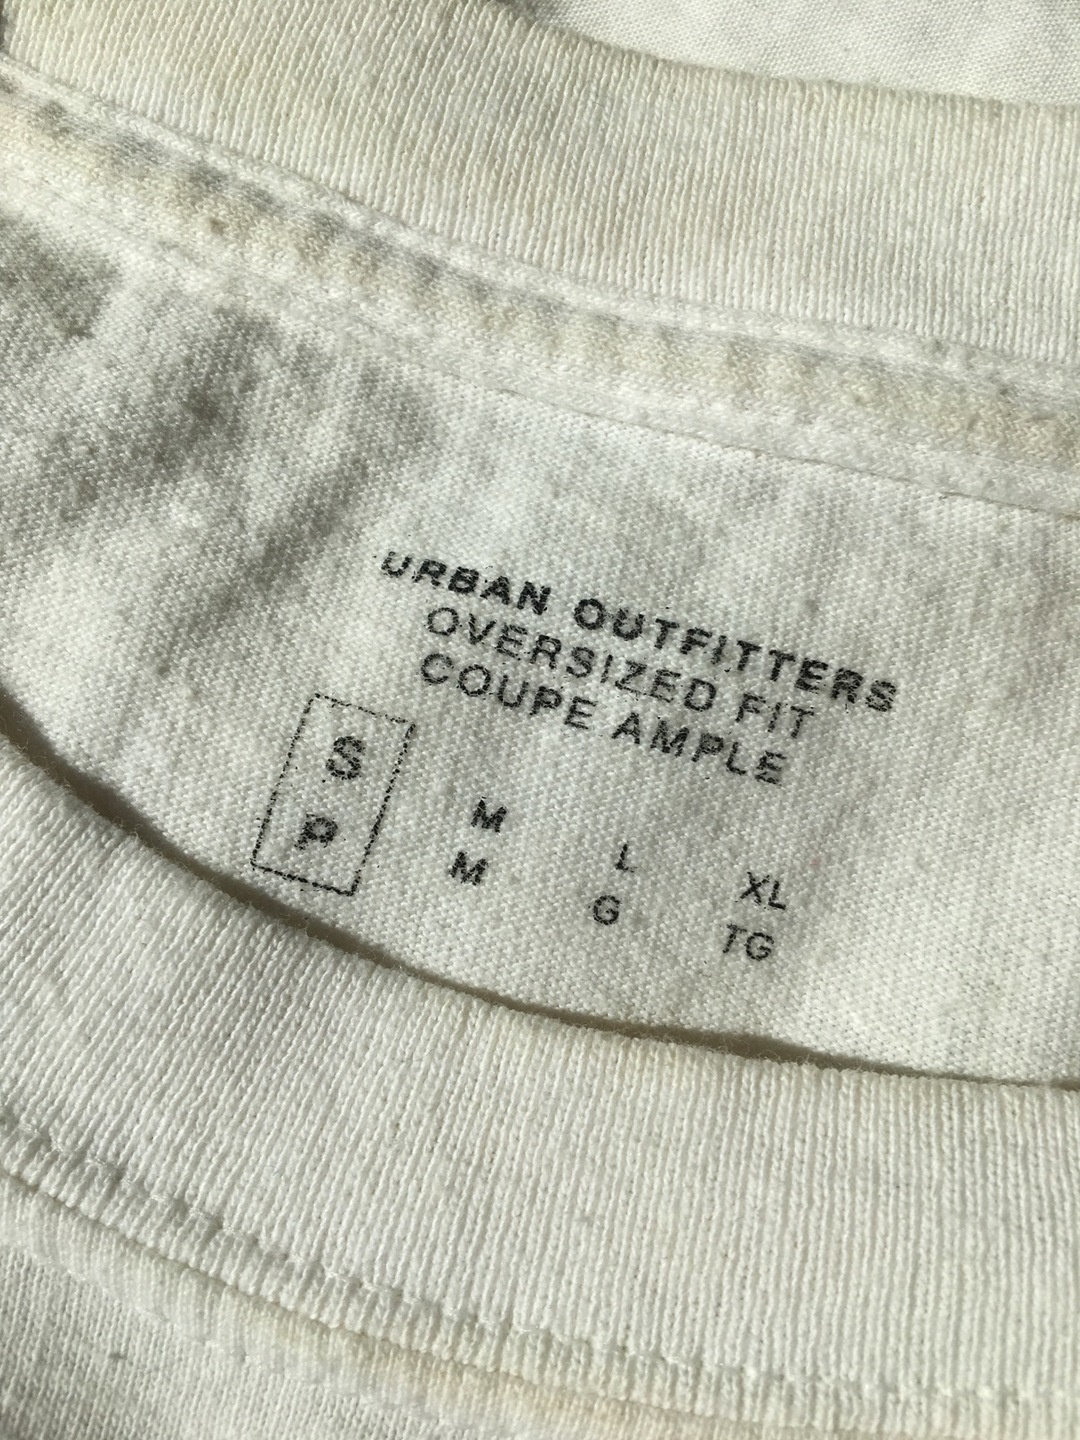 Women's tops & t-shirts - URBAN OUTFITTERS photo 4